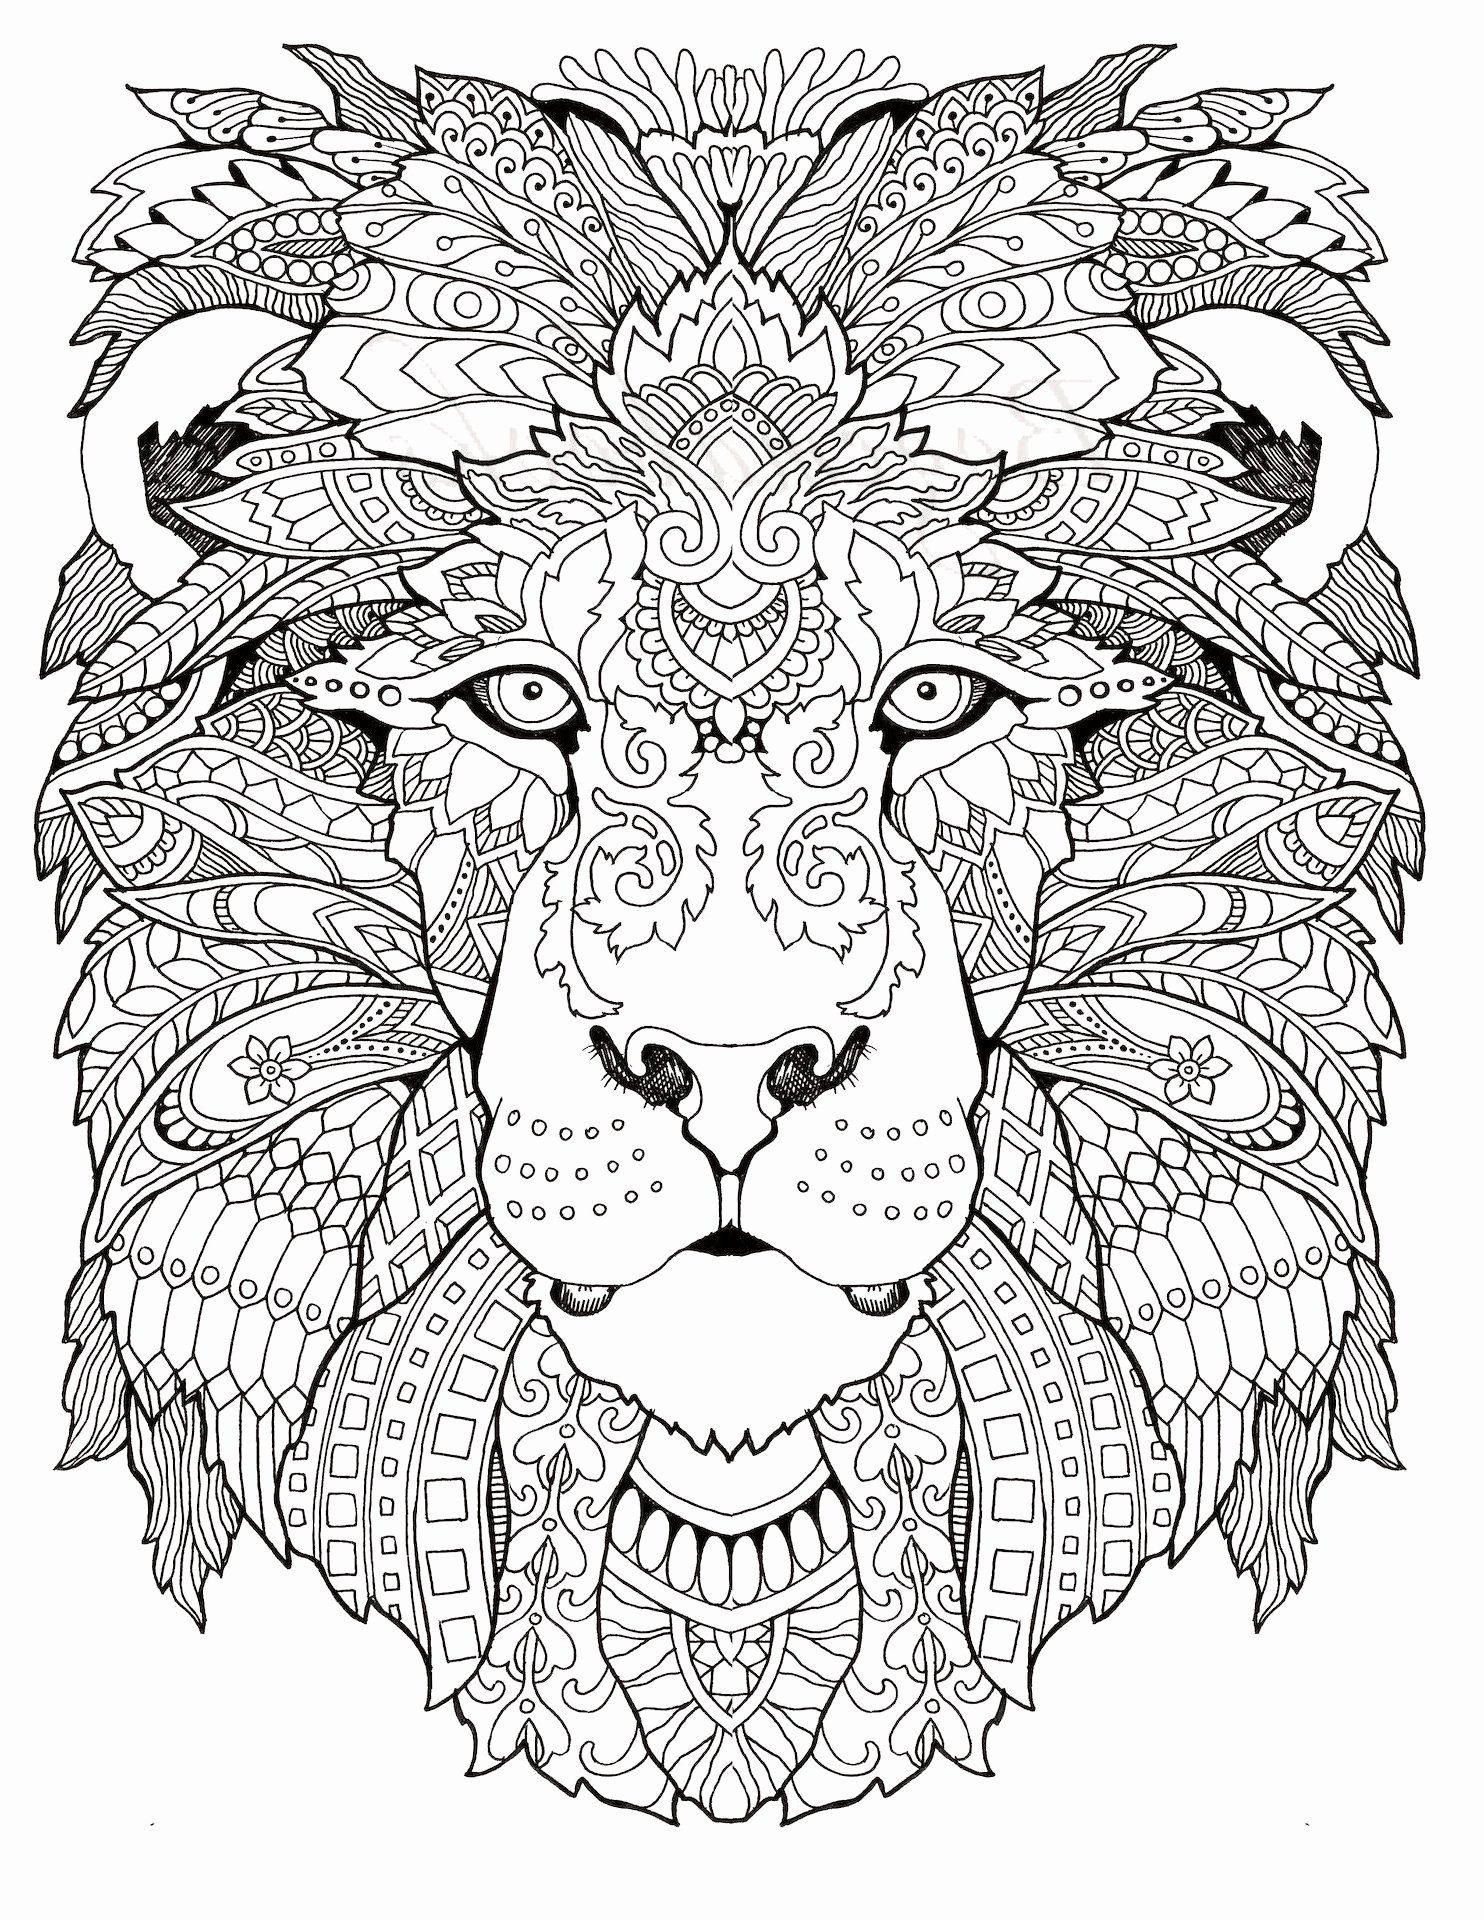 Printable Adult Coloring Pages Animals In 2020 Lion Coloring